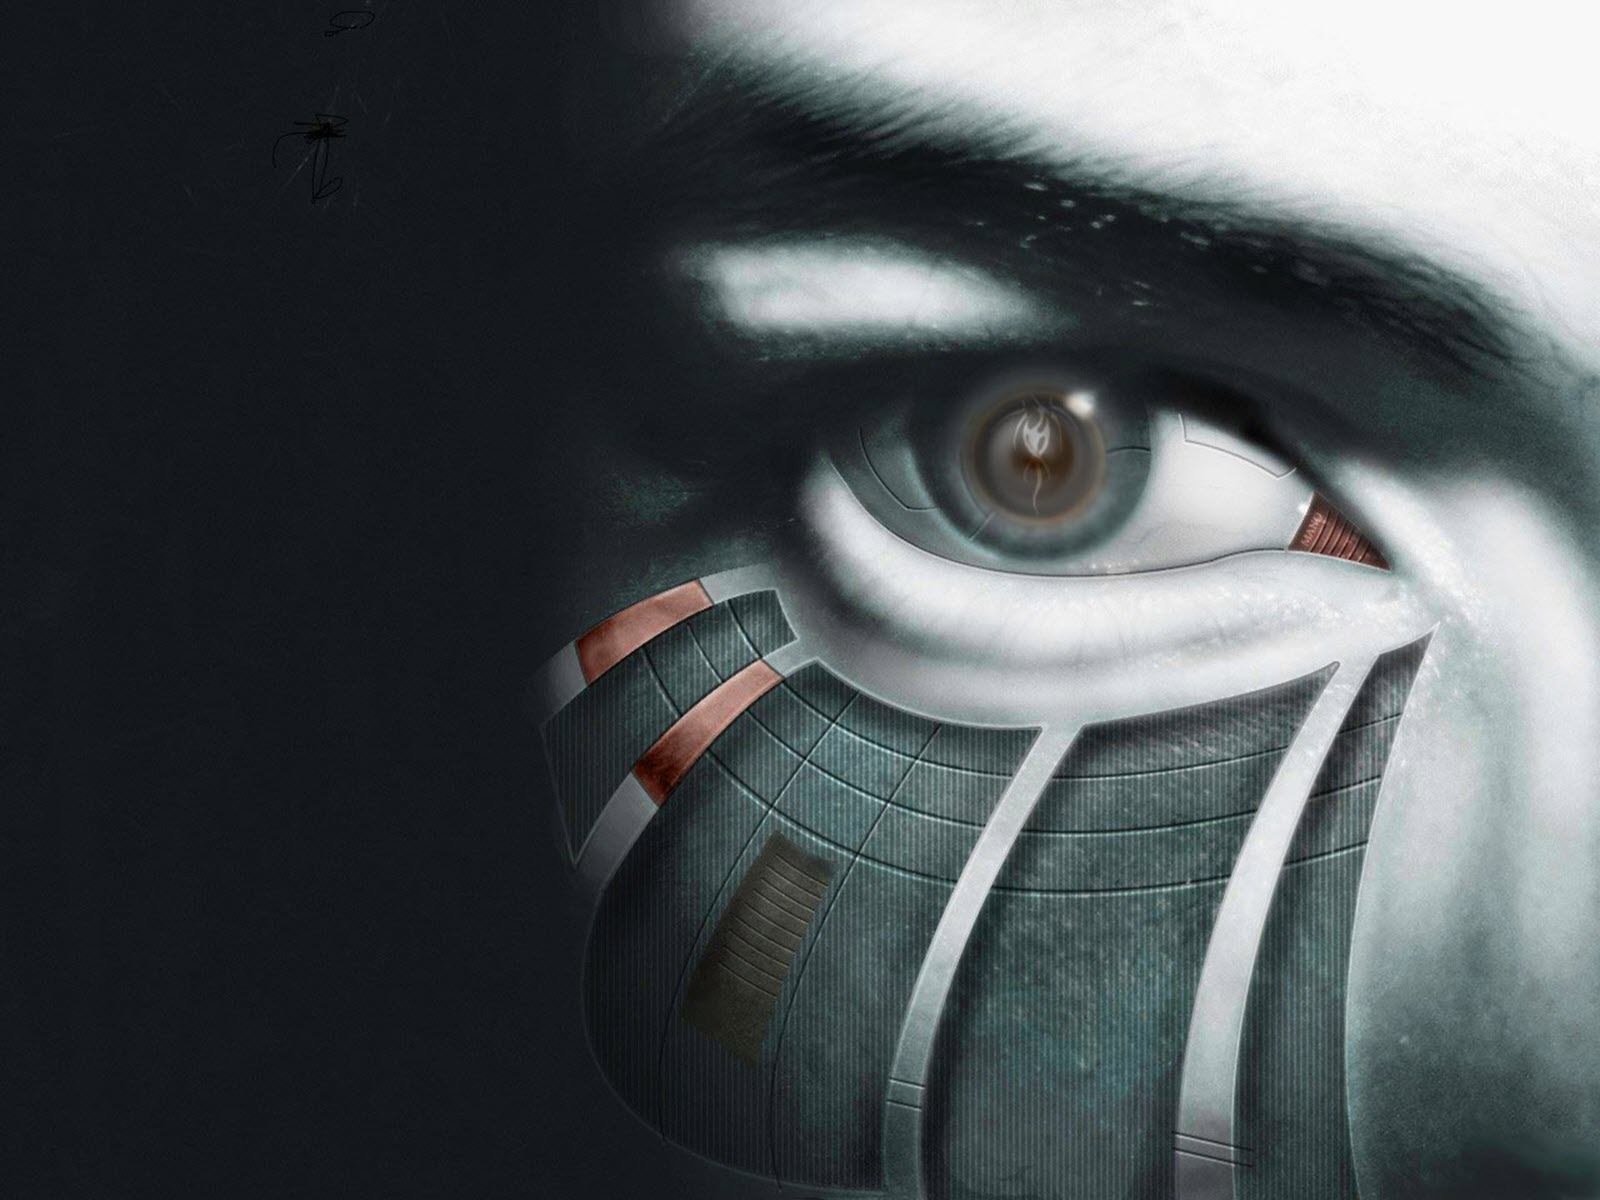 Sci Fi - Cyborg  Eye Robot Wallpaper